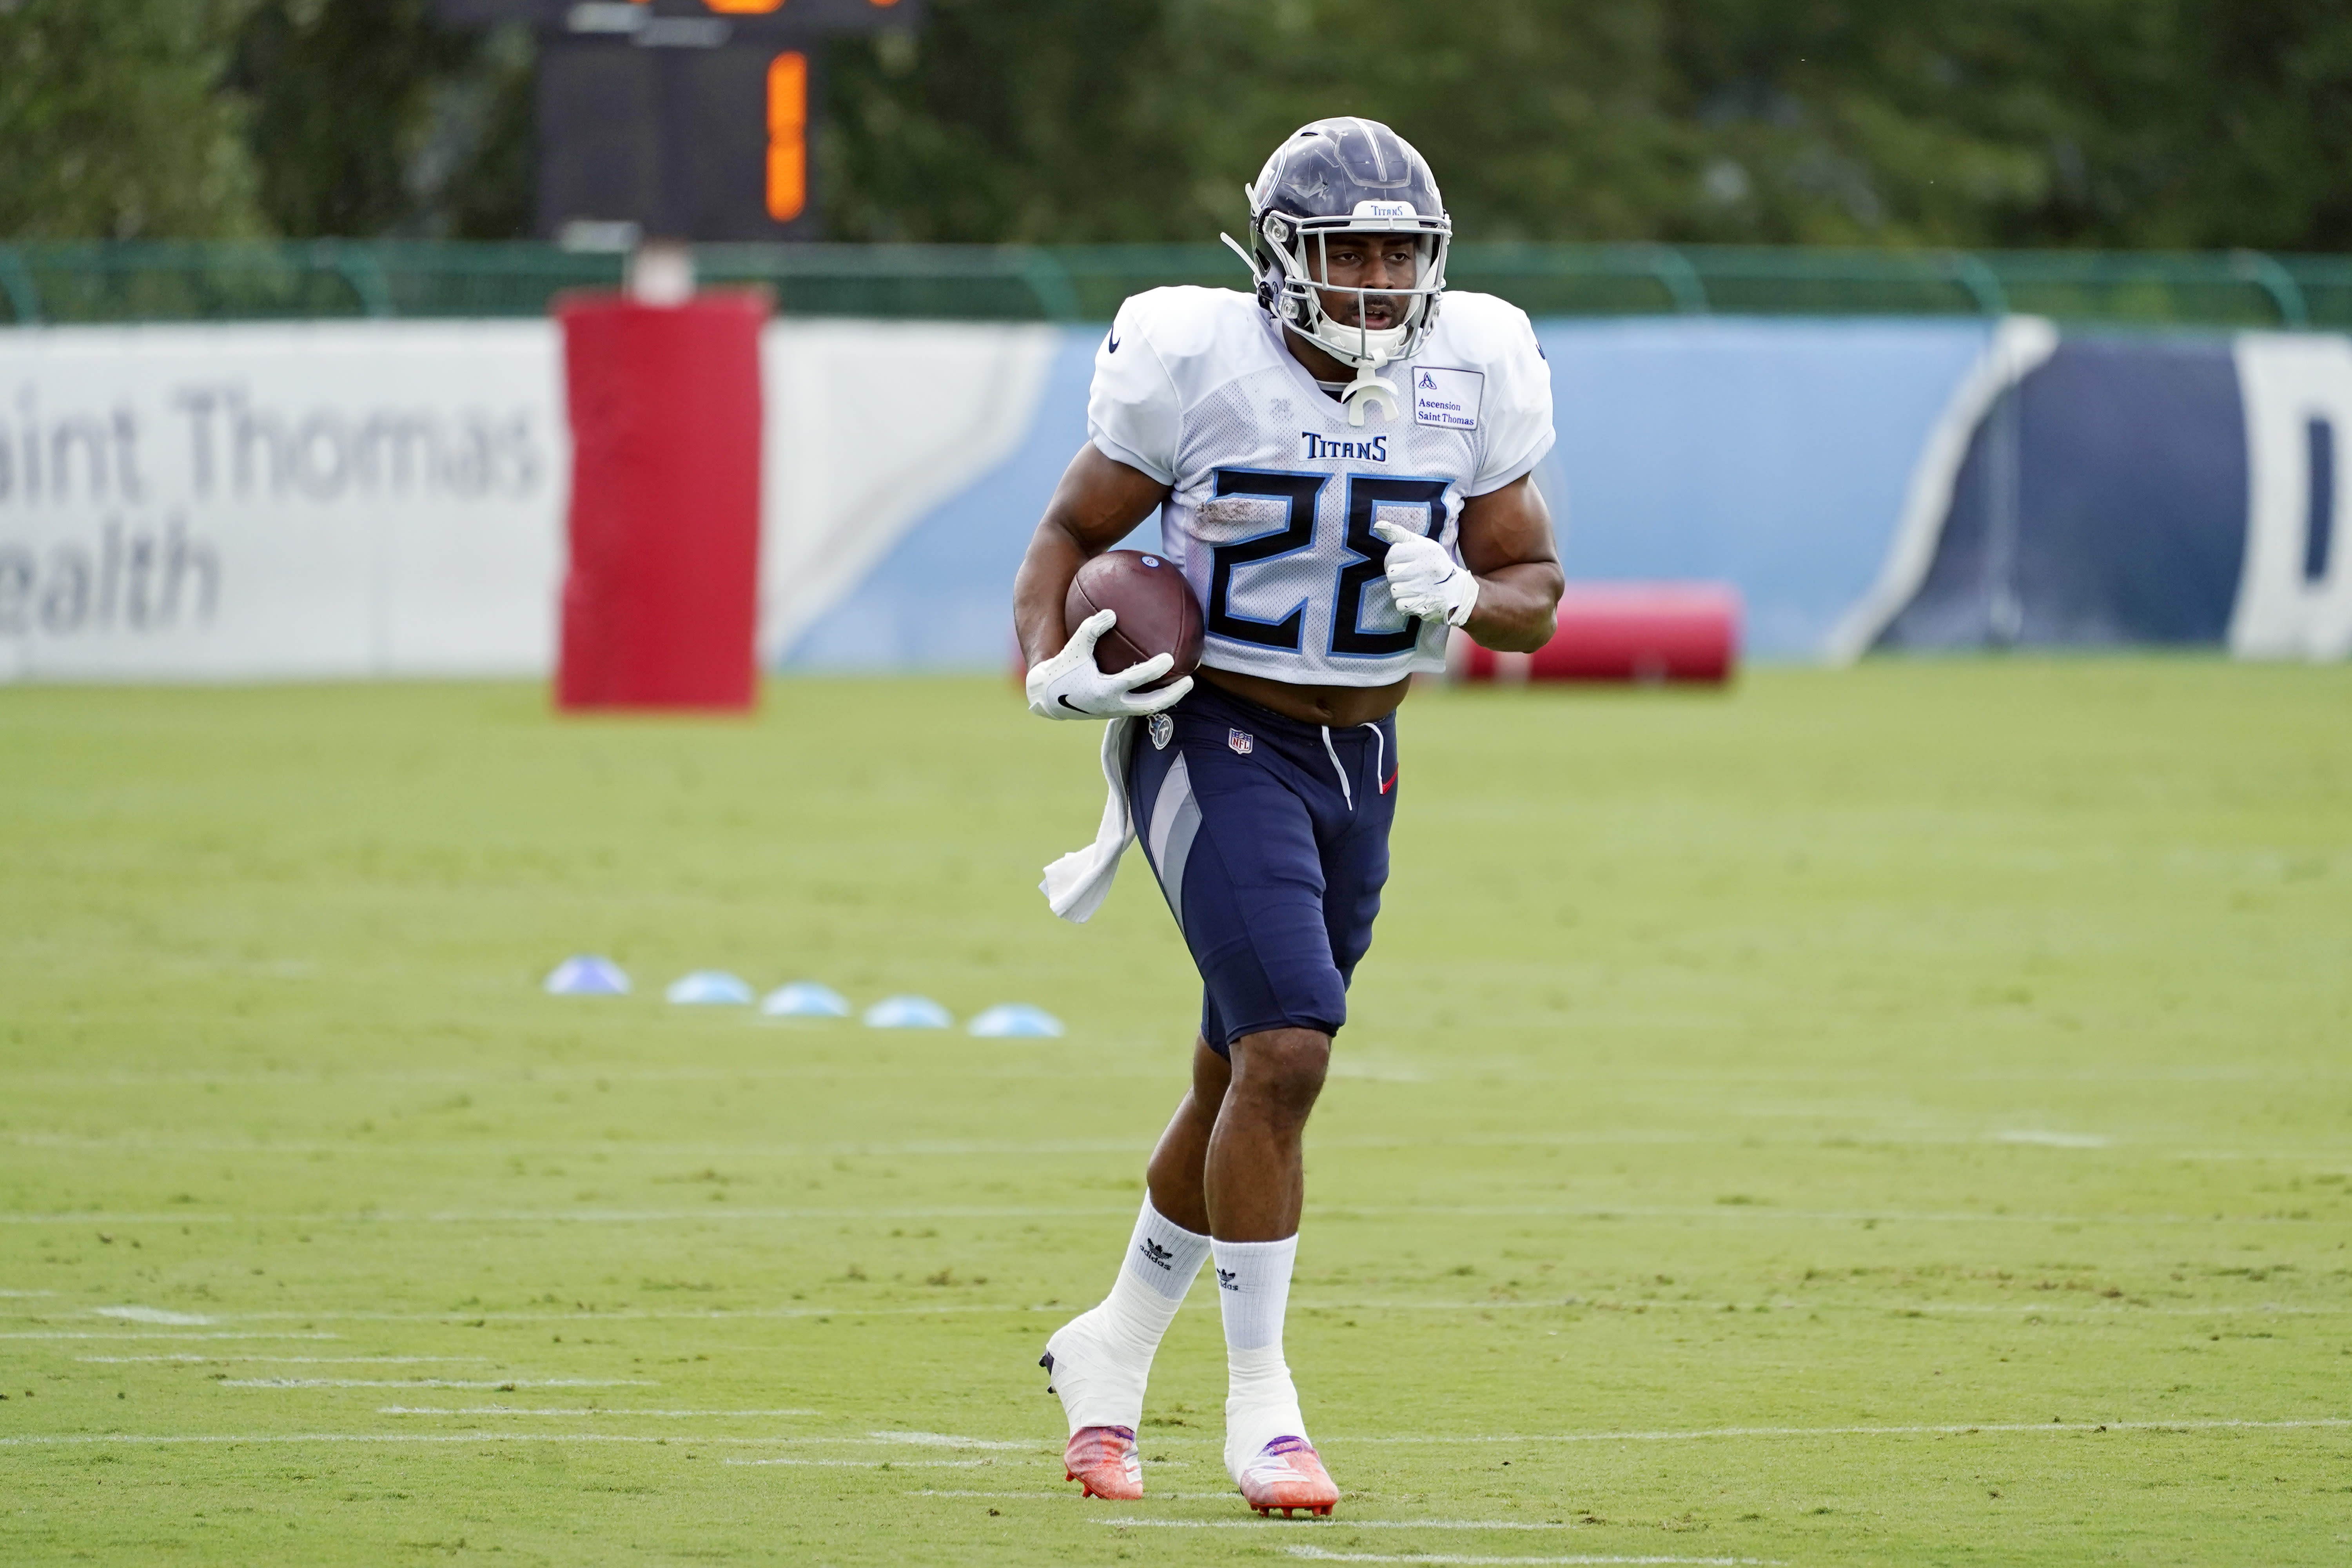 Tennessee Titans running back Jeremy McNichols takes part in NFL football training camp Friday, Aug. 28, 2020, in Nashville, Tenn. (AP Photo/Mark Humphrey, Pool)